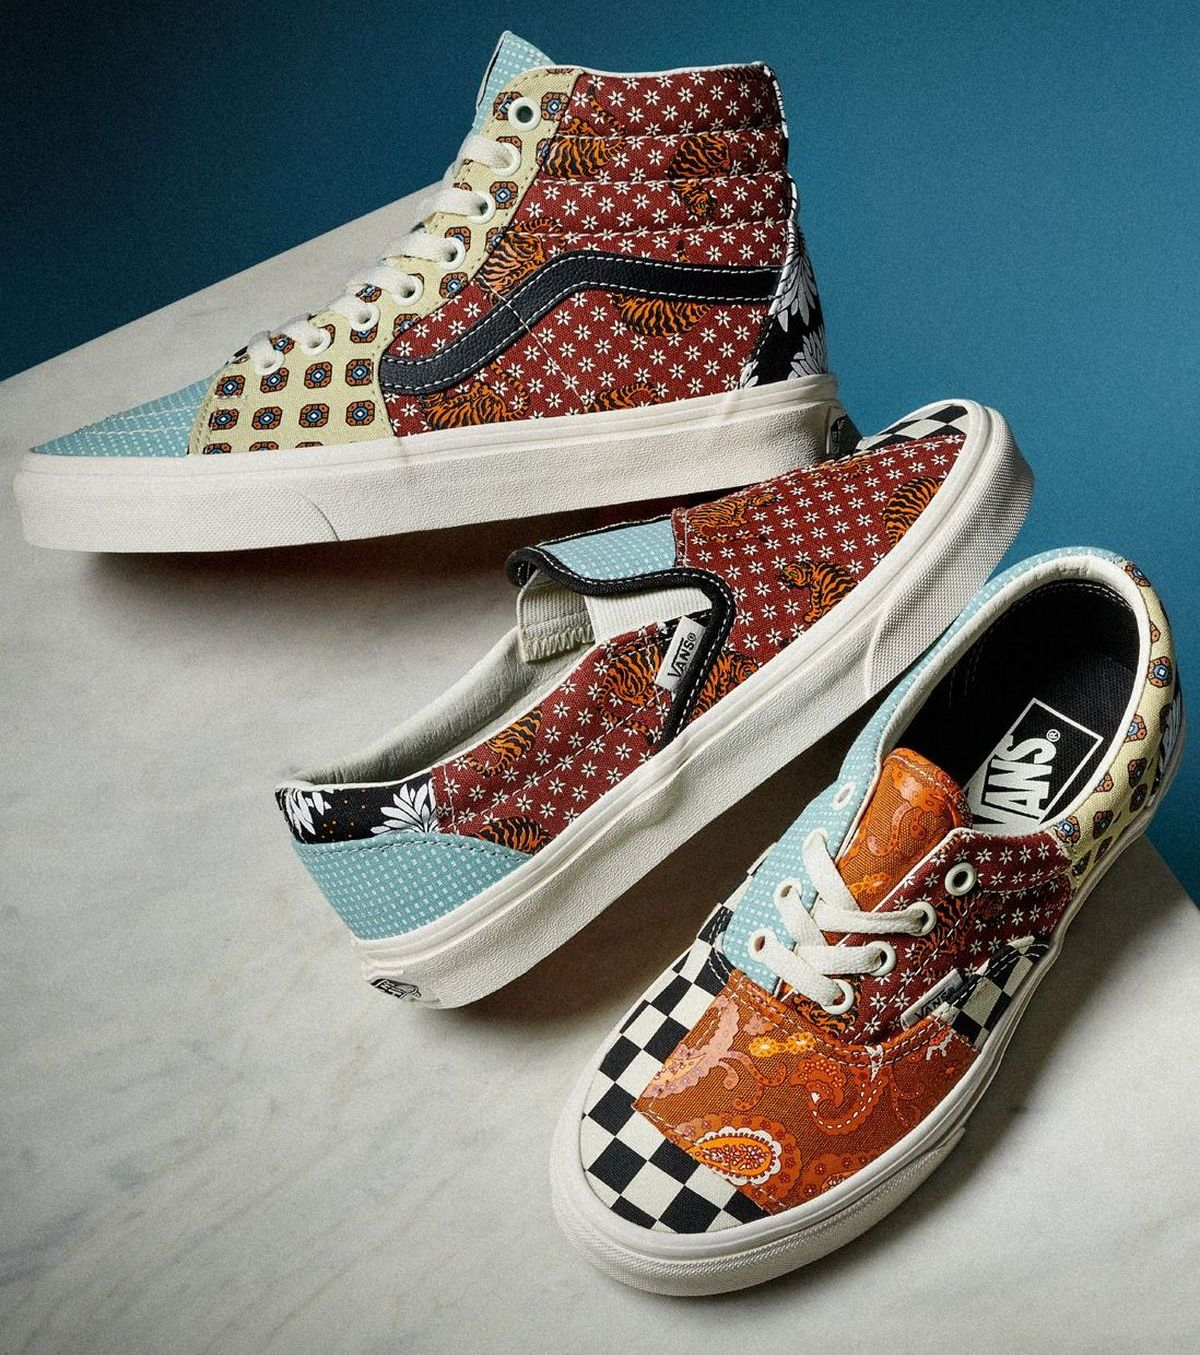 Tiger-Patchwork-Kollektion, Vans